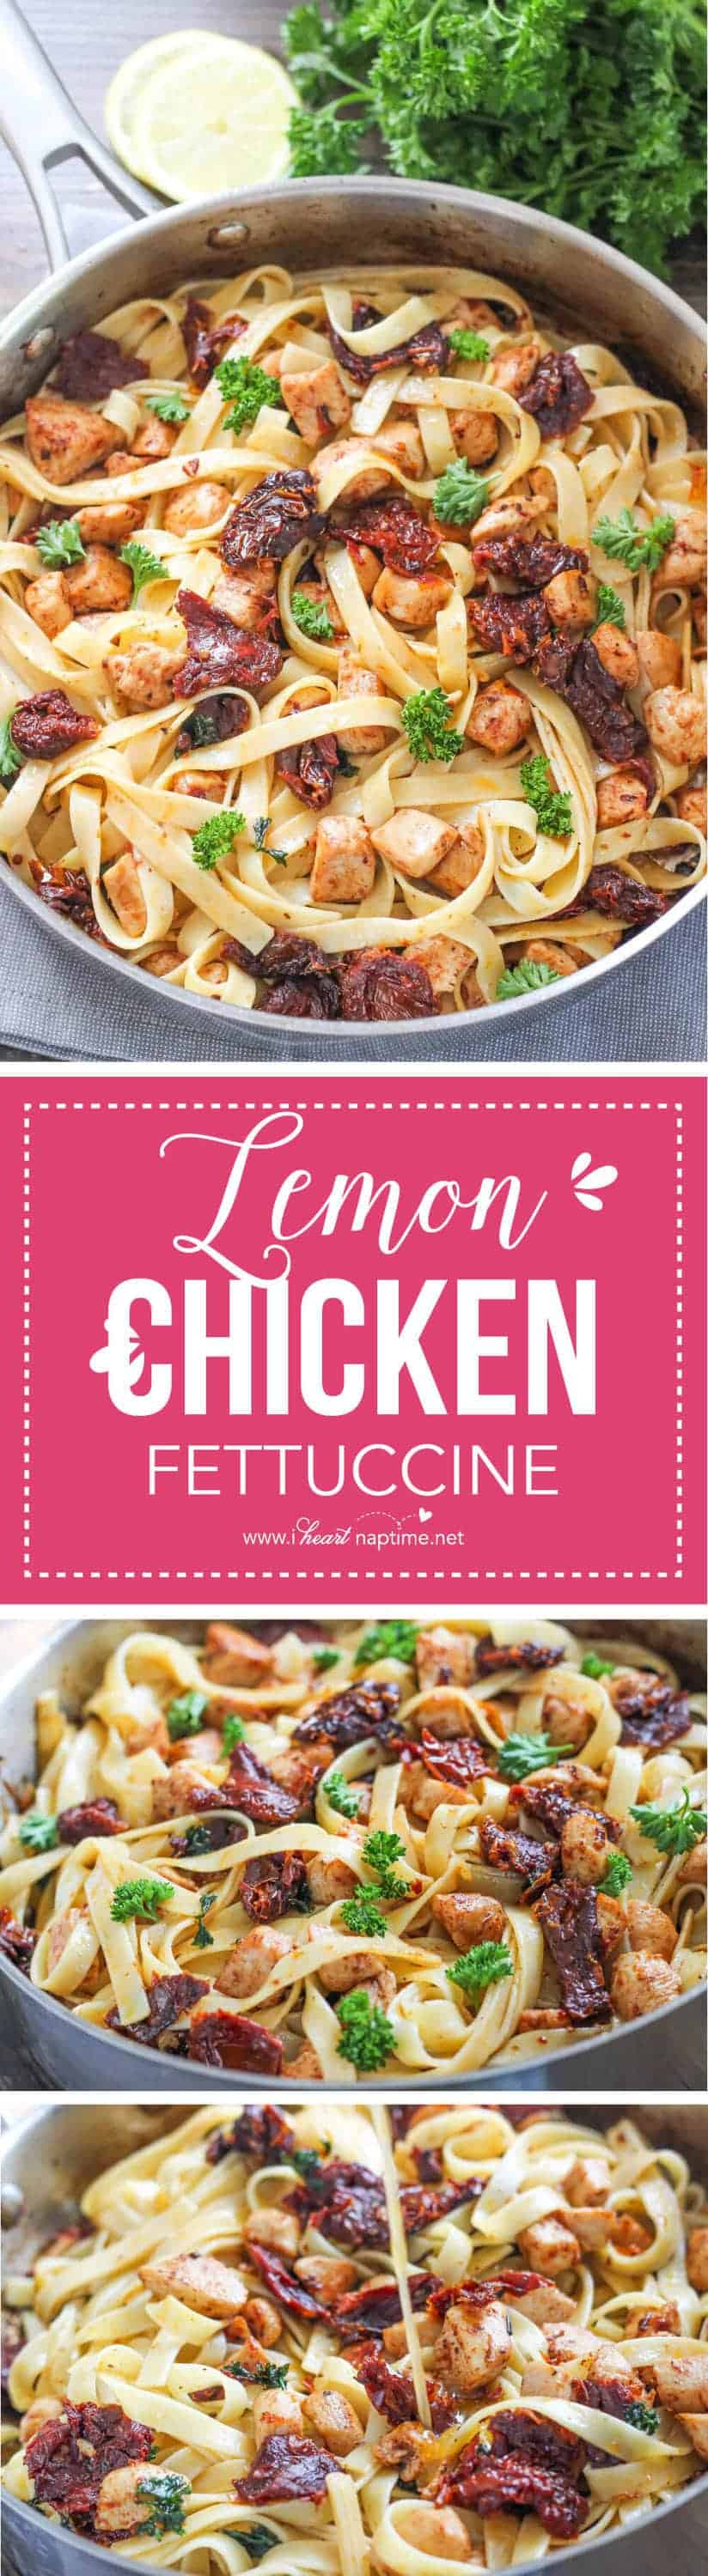 Lemon Chicken Fettuccine - a refreshing pasta recipe made with chicken, sun-dried tomatoes, herbs, and a light lemon dressing. Ready in just 30 minutes, this dish is easy and delicious!